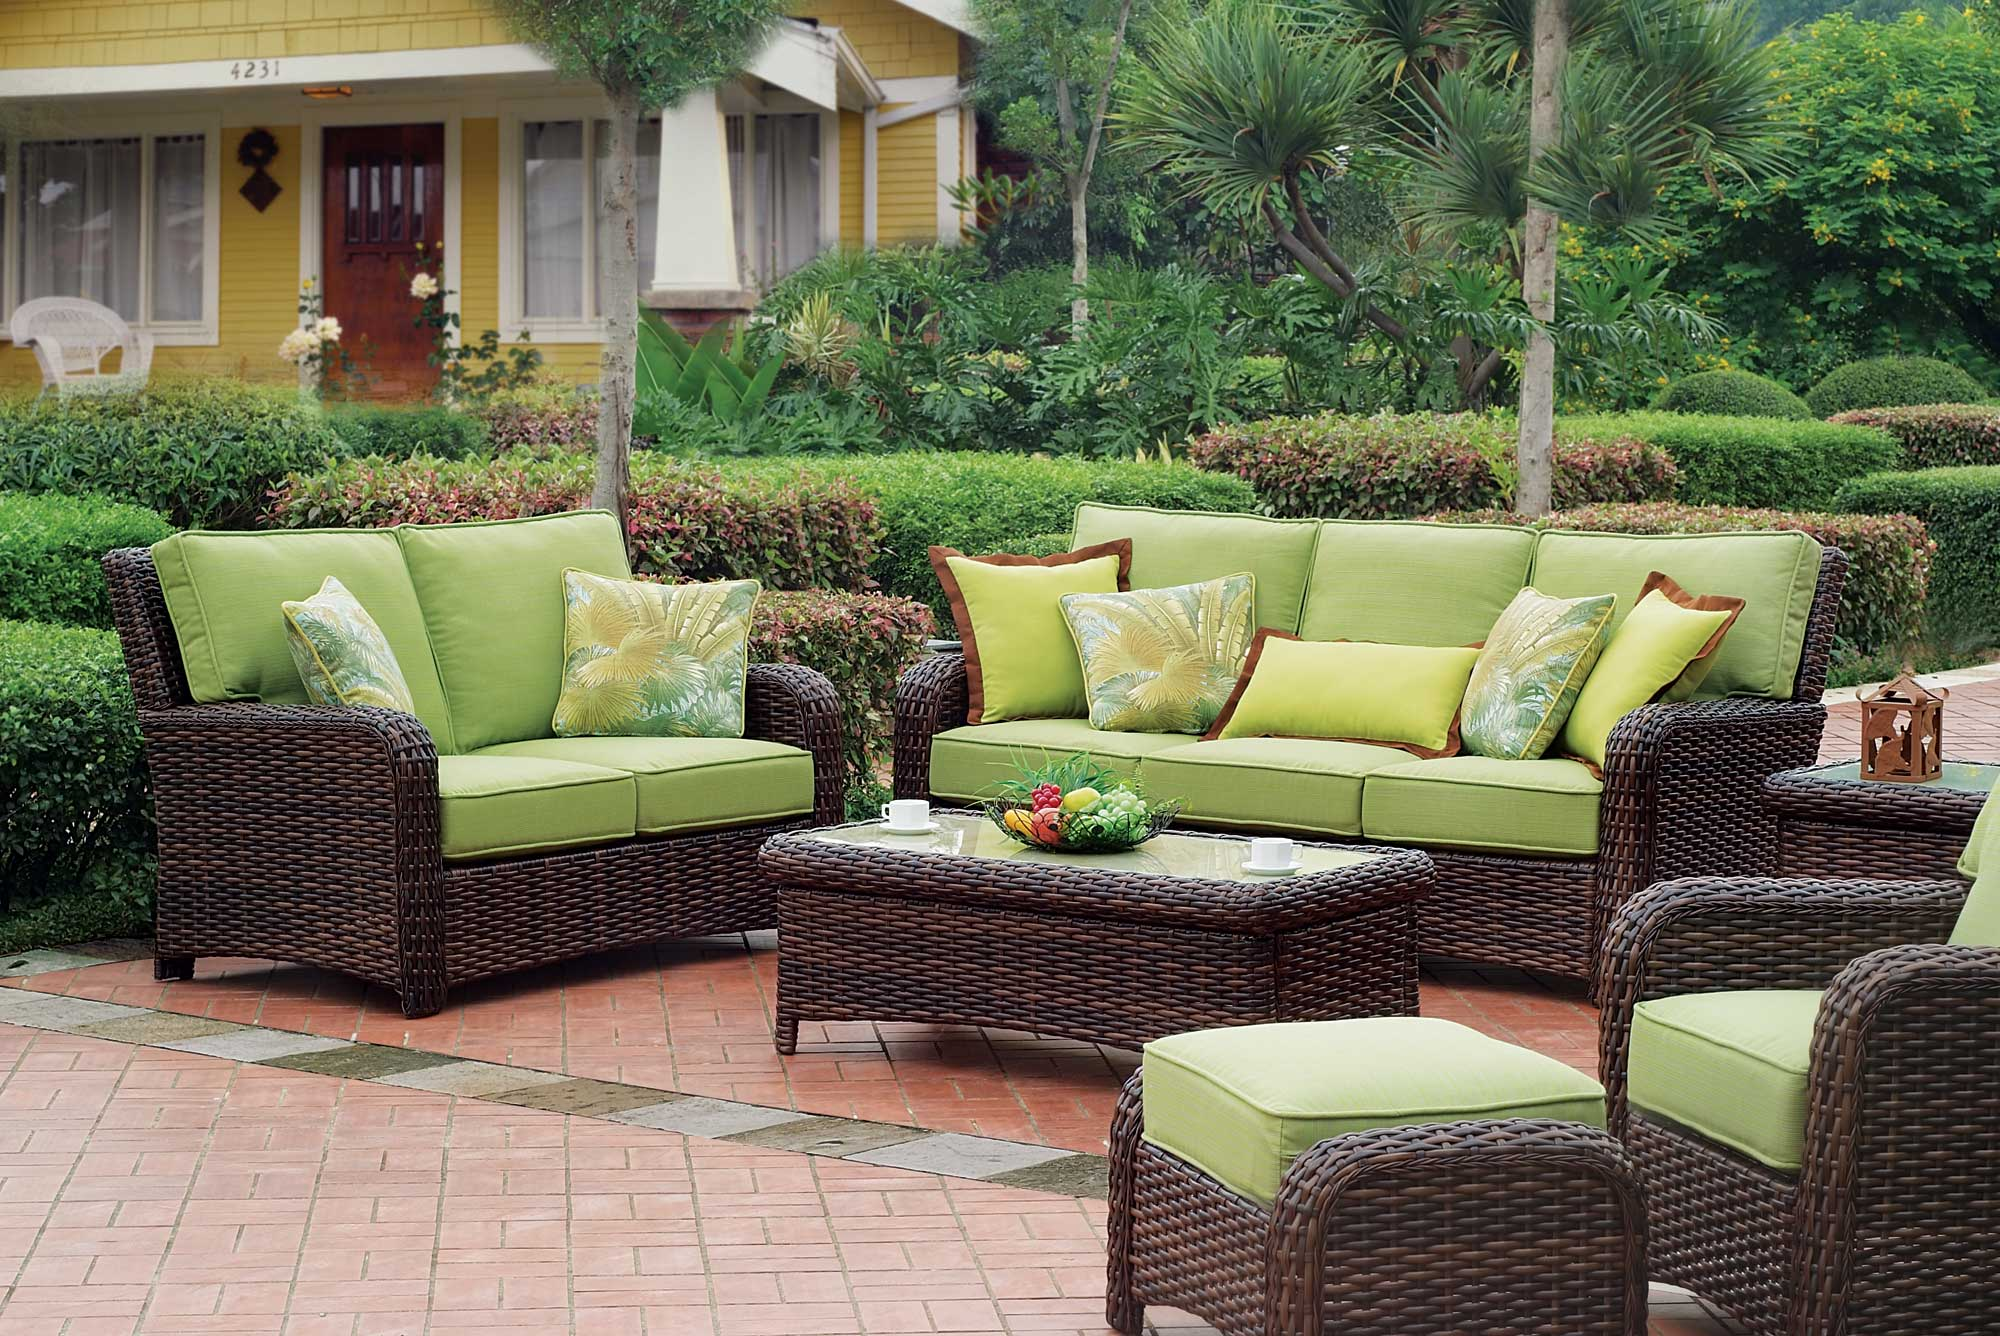 Outdoor Living: Tips for Keeping Your Rattan Furniture ... on Outdoor Living Wicker id=93335